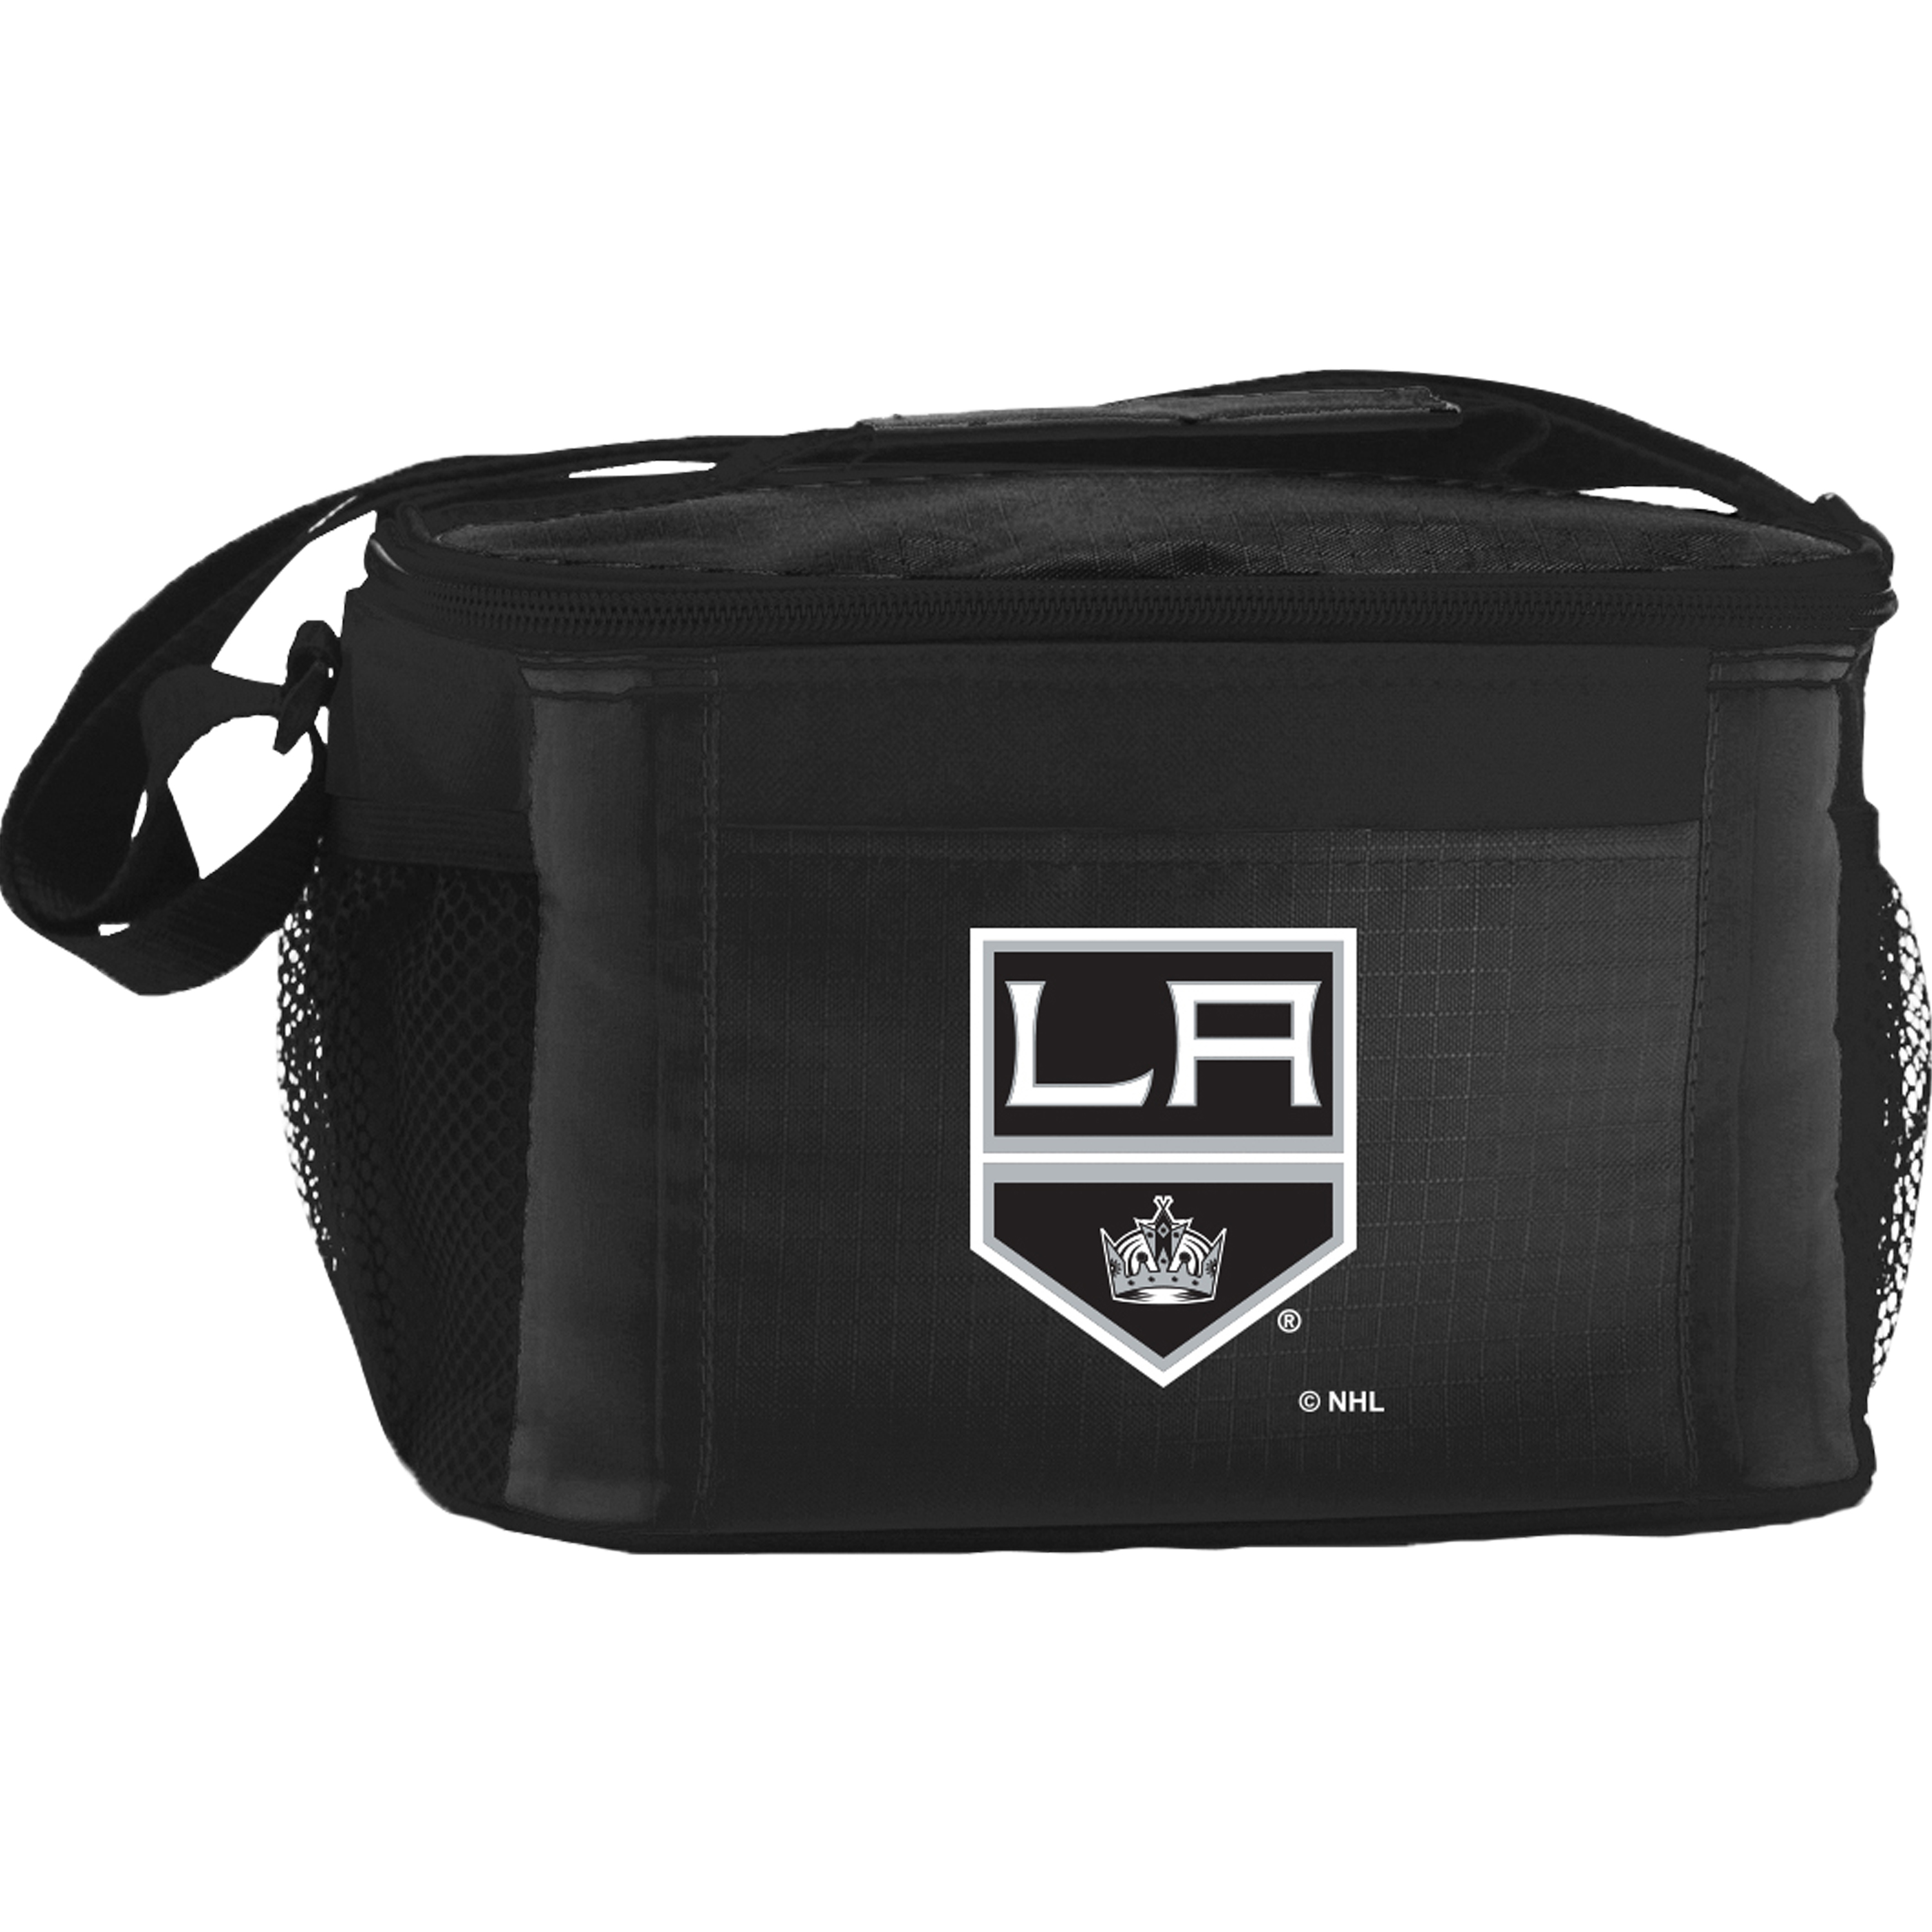 Los Angeles Kings - 6pk Cooler Bag